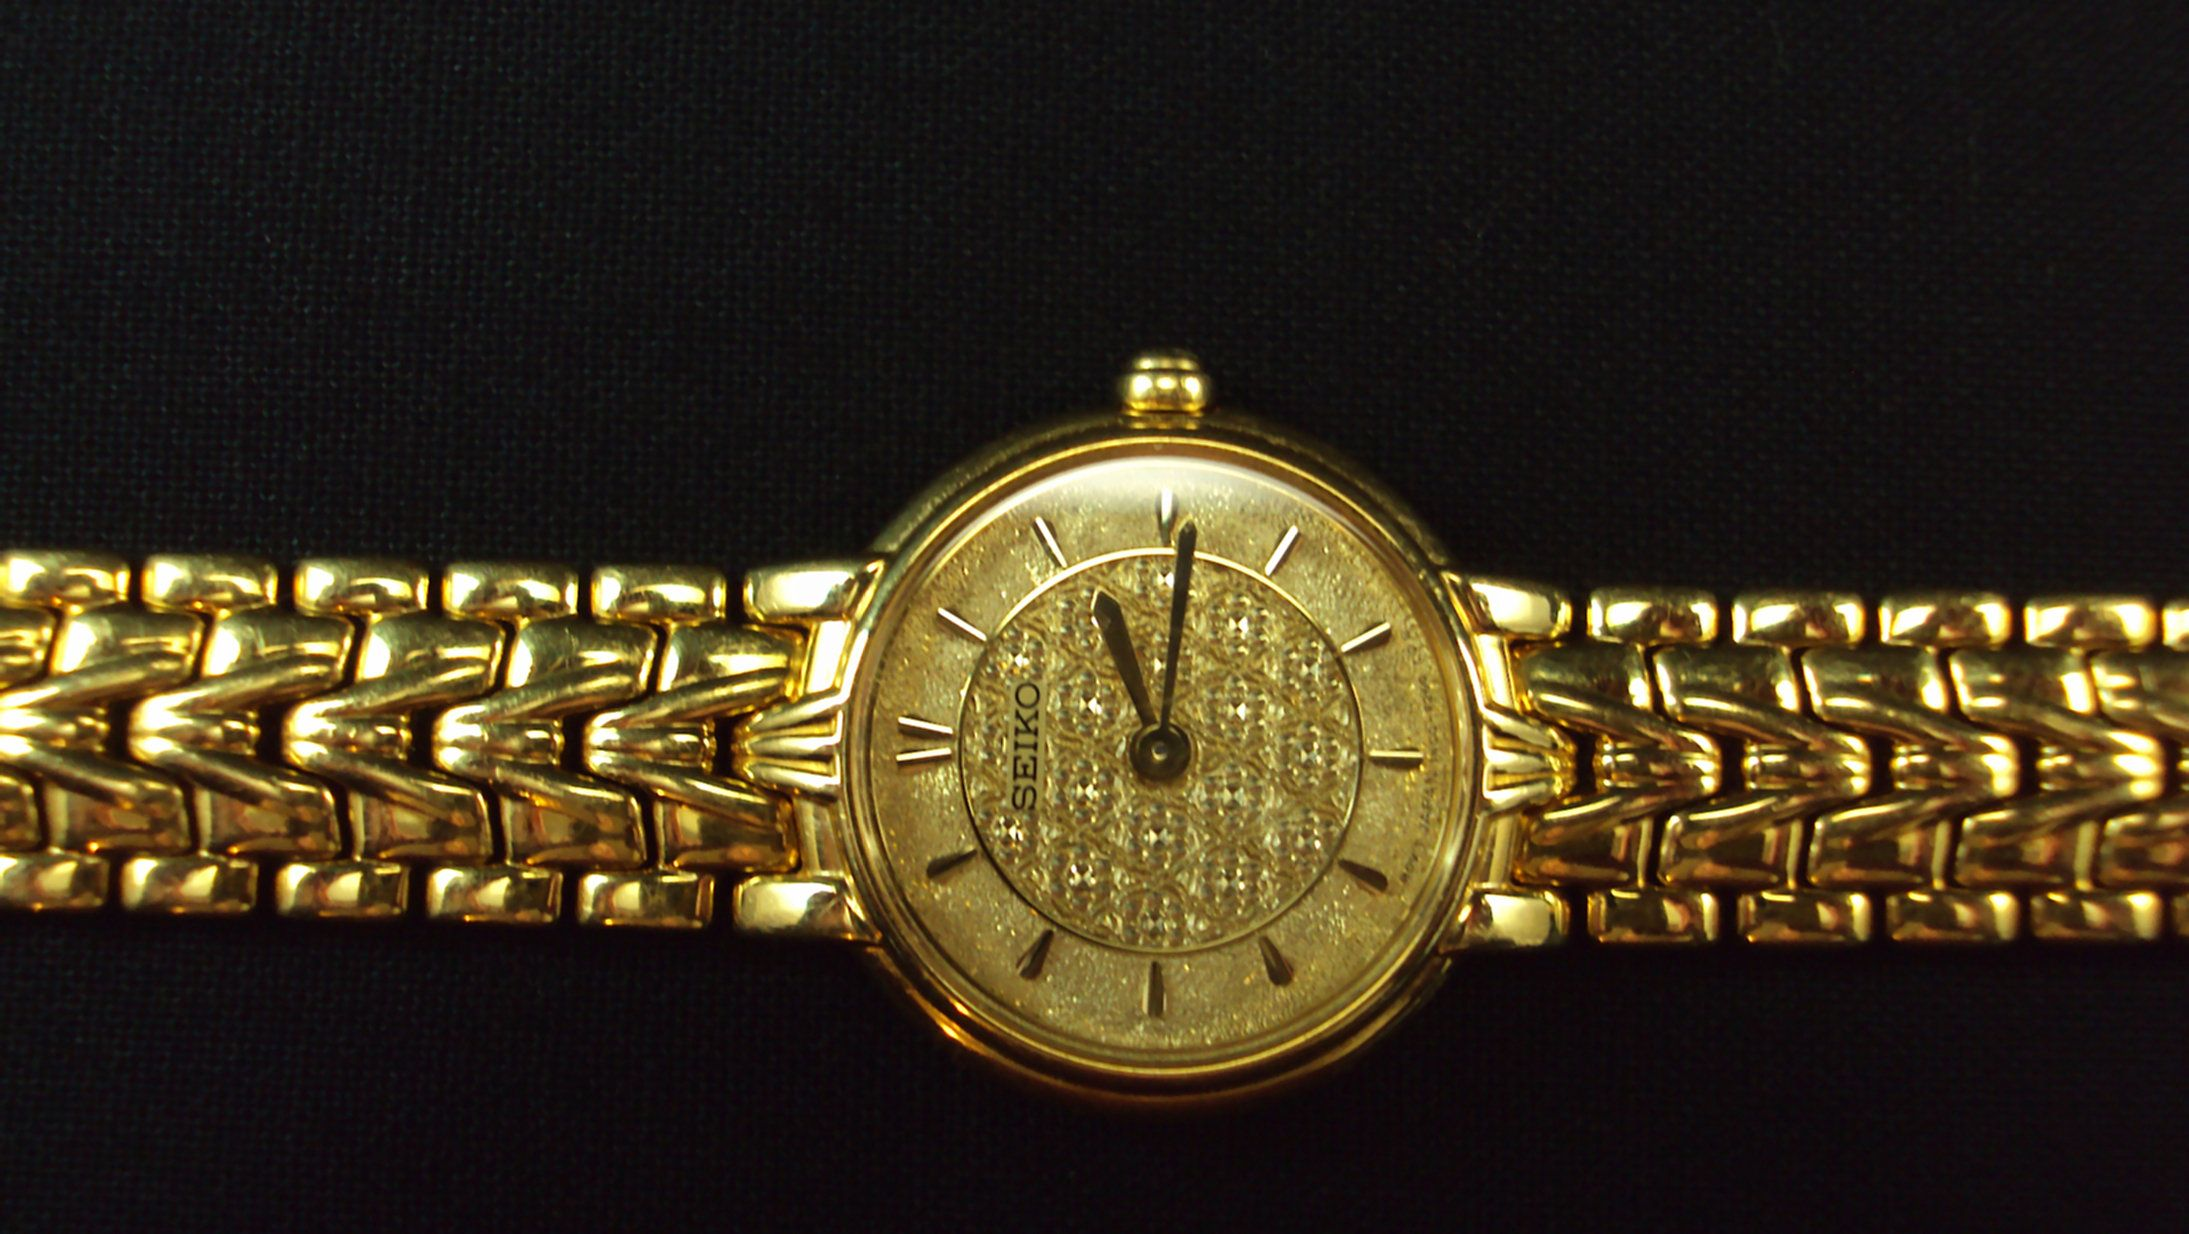 Seiko Ladies Dress Watch by MamakinsCurios on Etsy